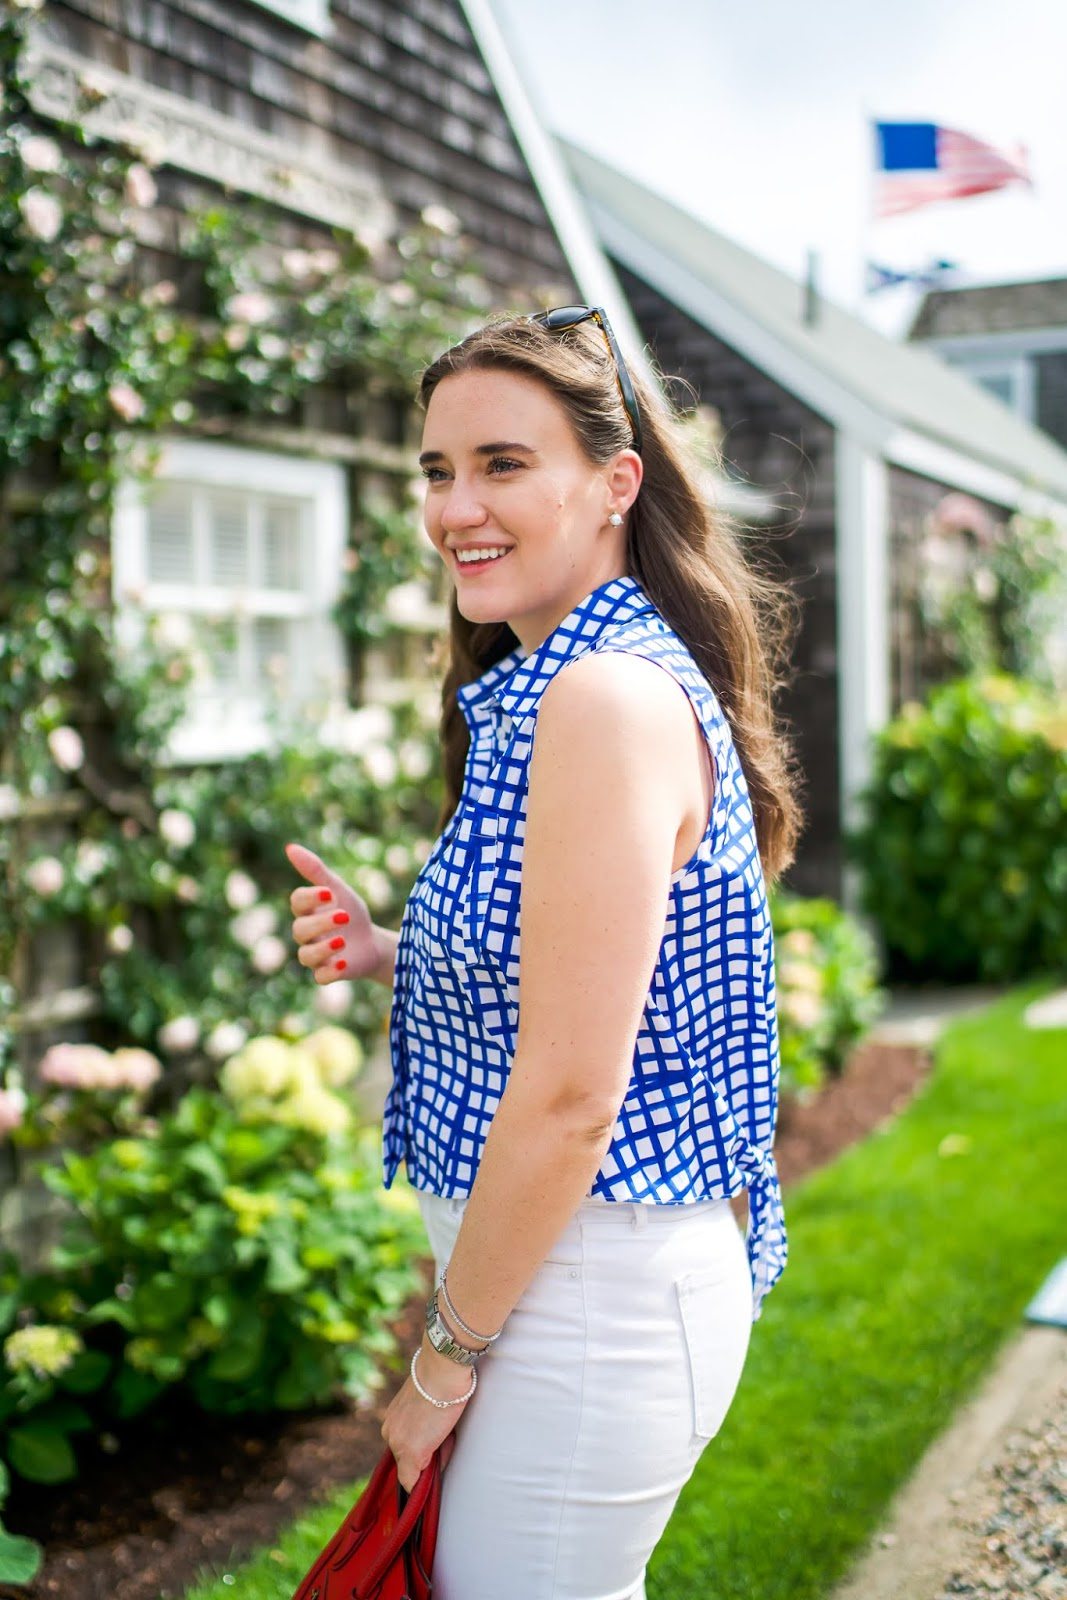 The Perfect Summer Outfit for a Stroll in Nantucket featured by popular New York fashion blogger, Covering the Bases